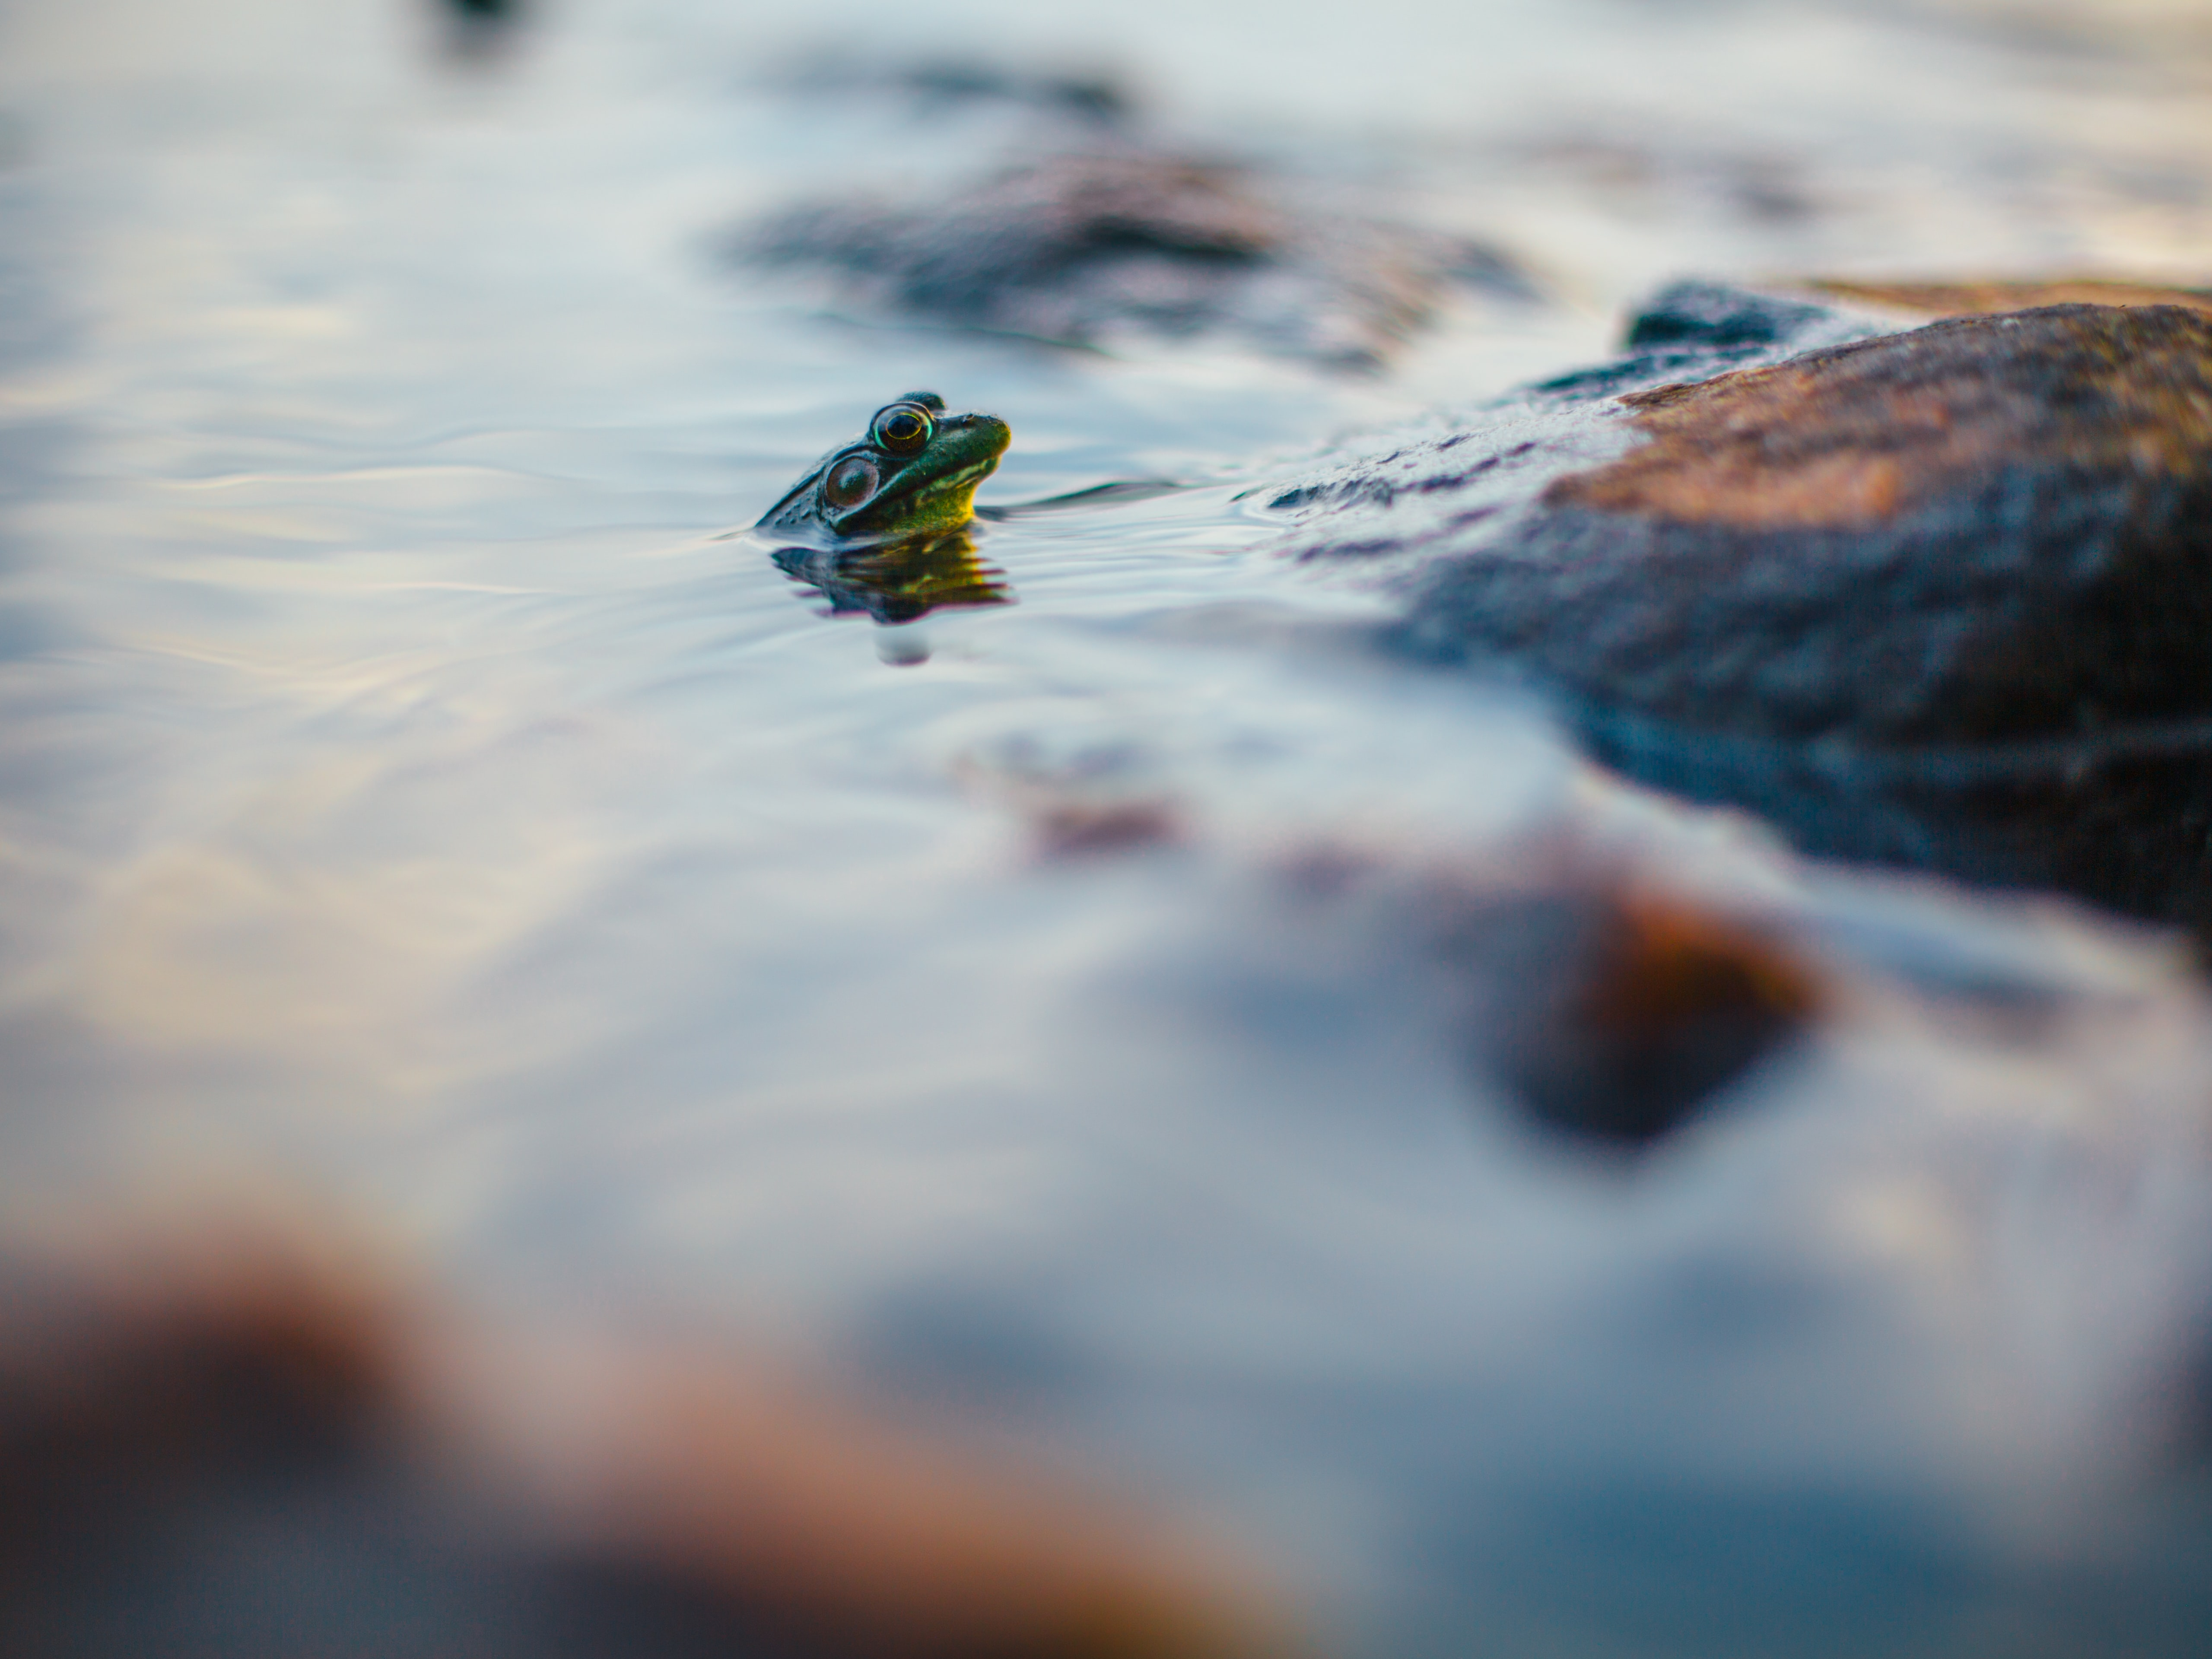 A green frog sticking its head out of the water by a rock at Algonquin Park